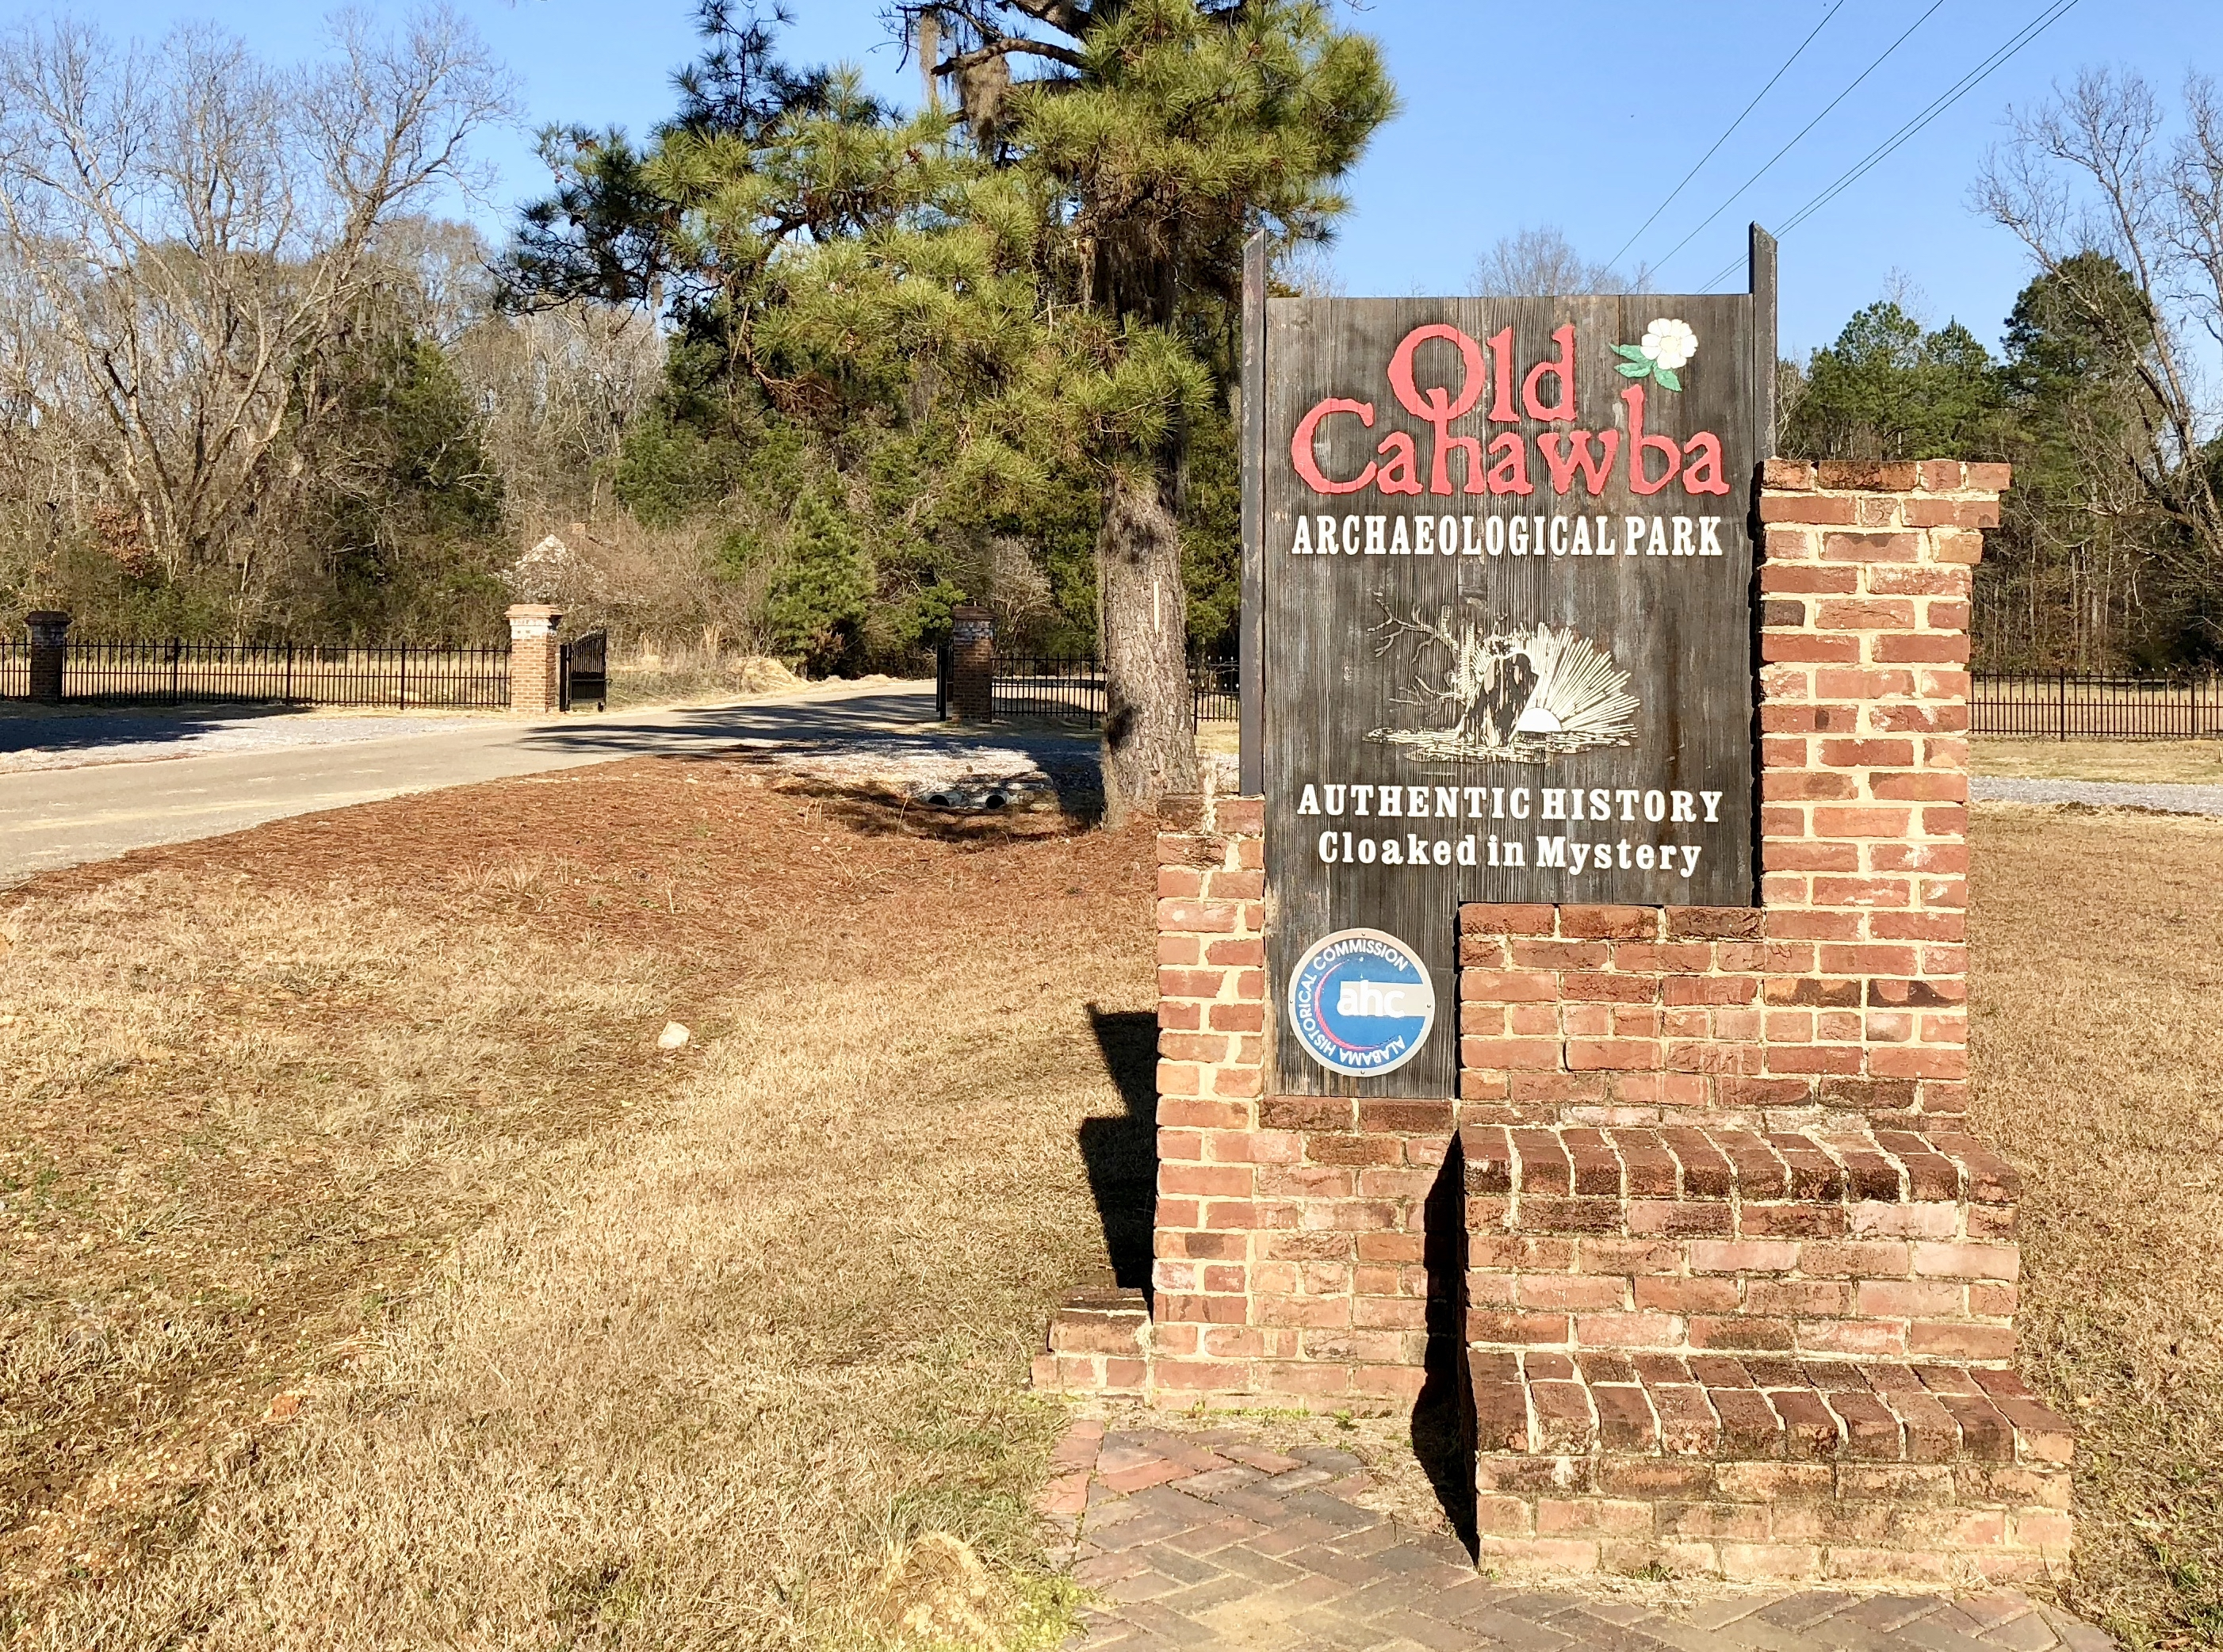 Entrance sign to the Cahawba Archaeological Park.